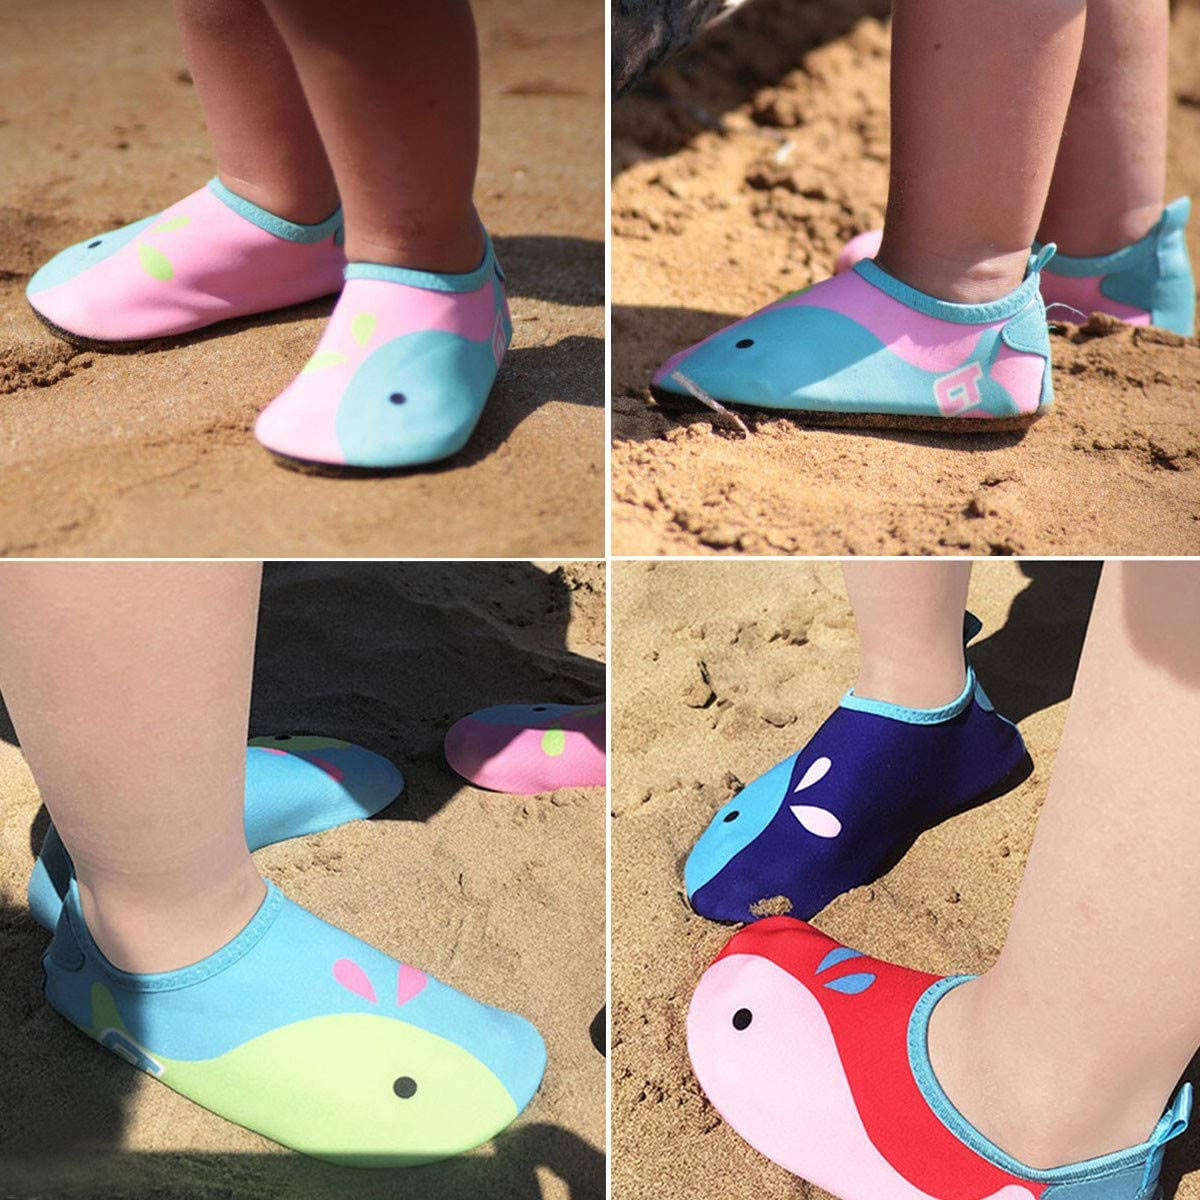 Timatego Toddler Kids Water Shoes Quick Dry Swim Beach Shoes Non-Slip Barefoot Aqua Socks for Boys Girls Surfing Yoga Outdoor Sports